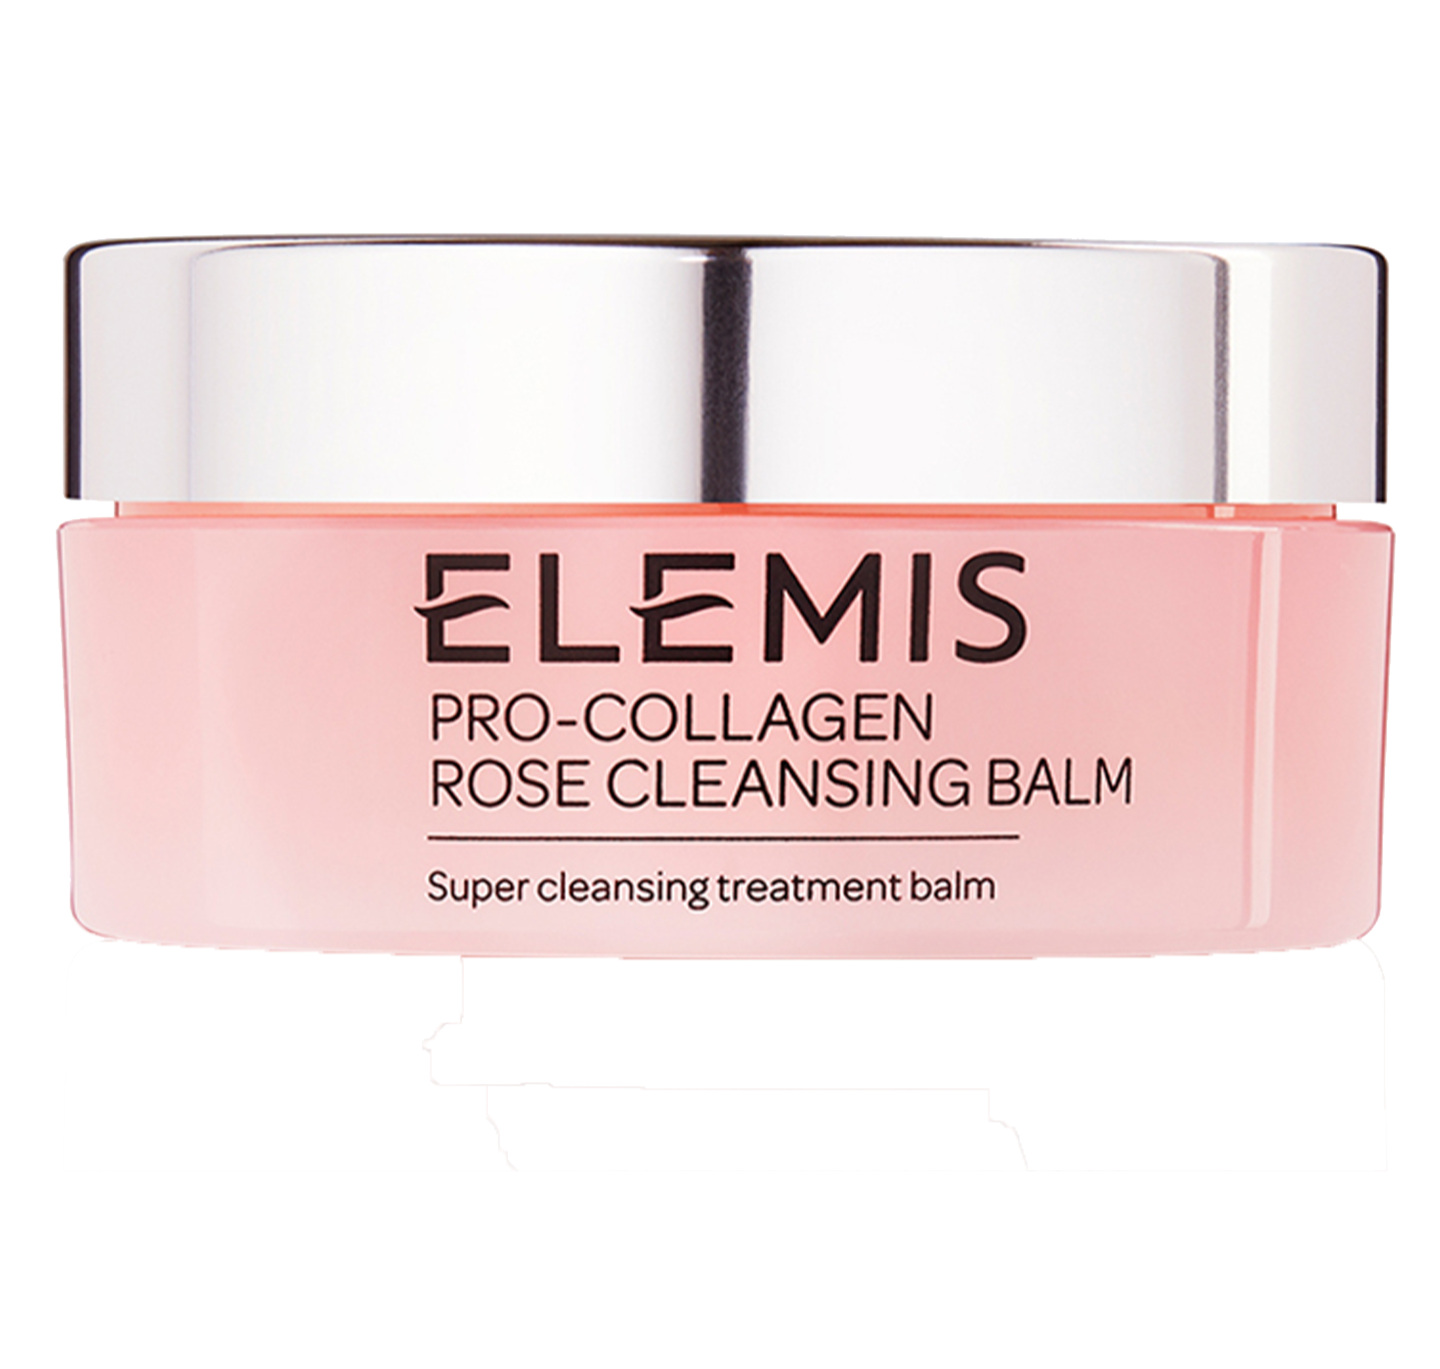 ELEMIS_Pro-Collagen+Rose+Cleansing+Balm_Transparent.jpg